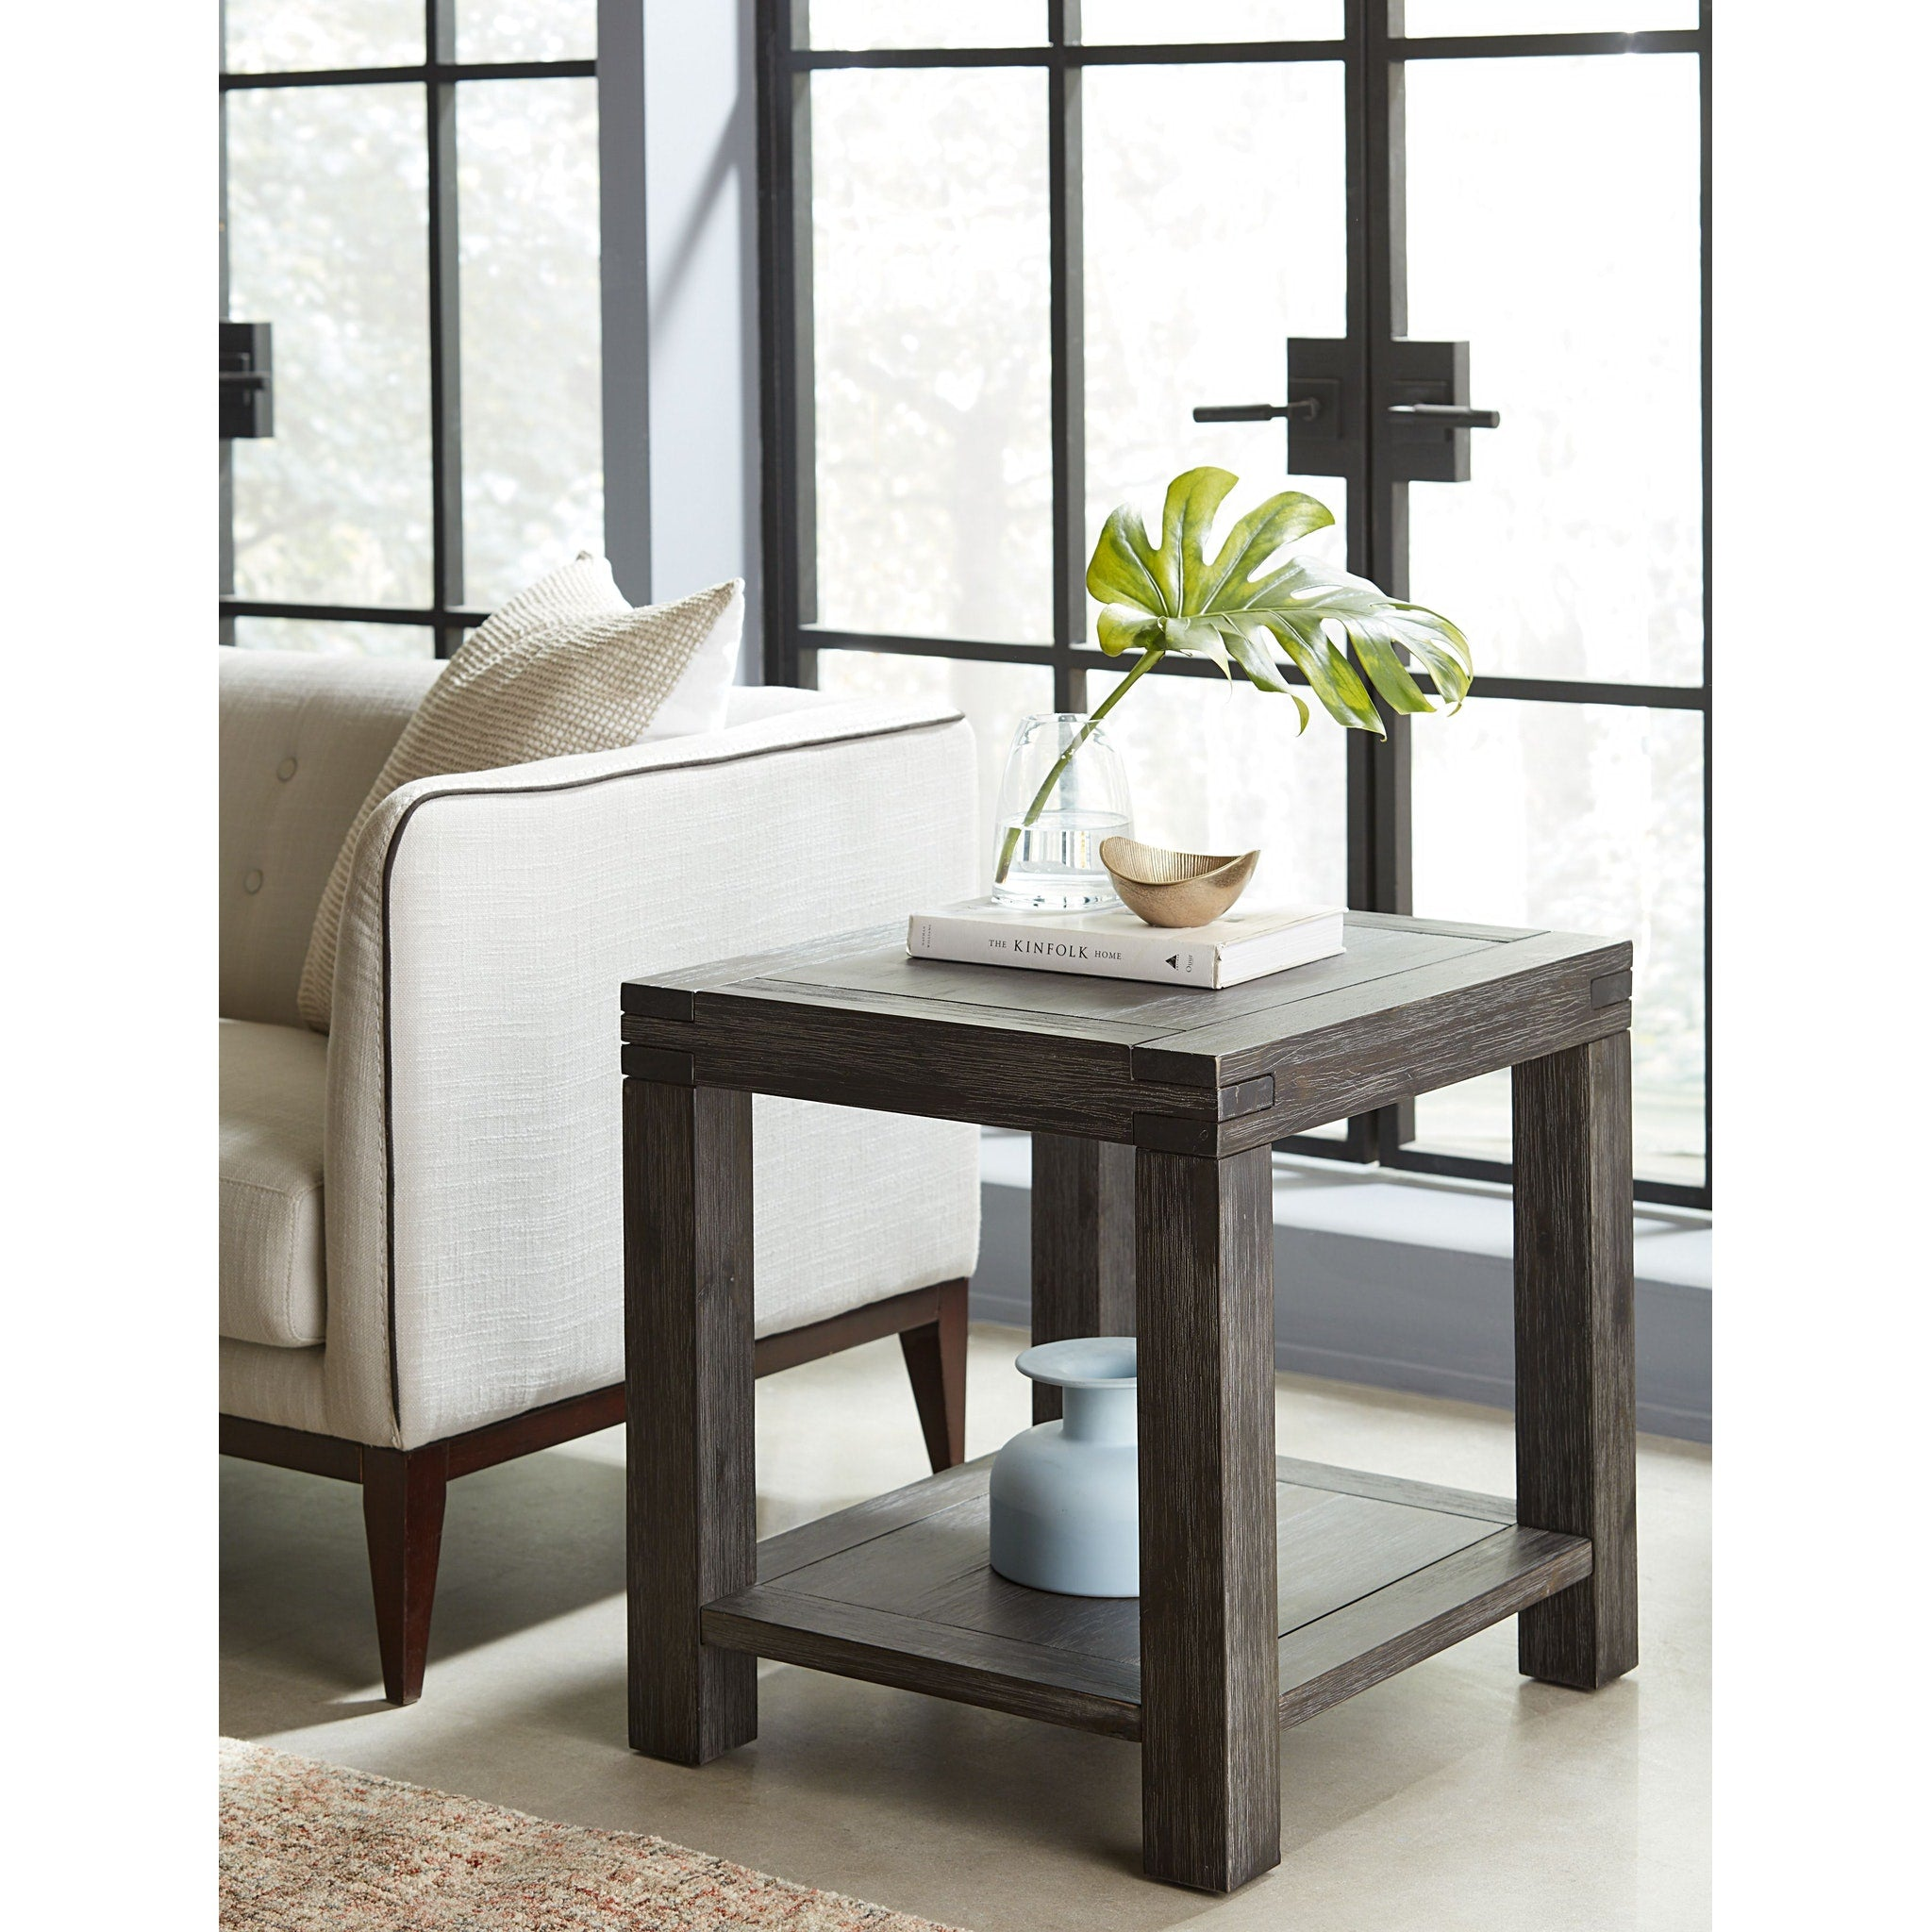 Meadow Solid Wood End Table in Graphite